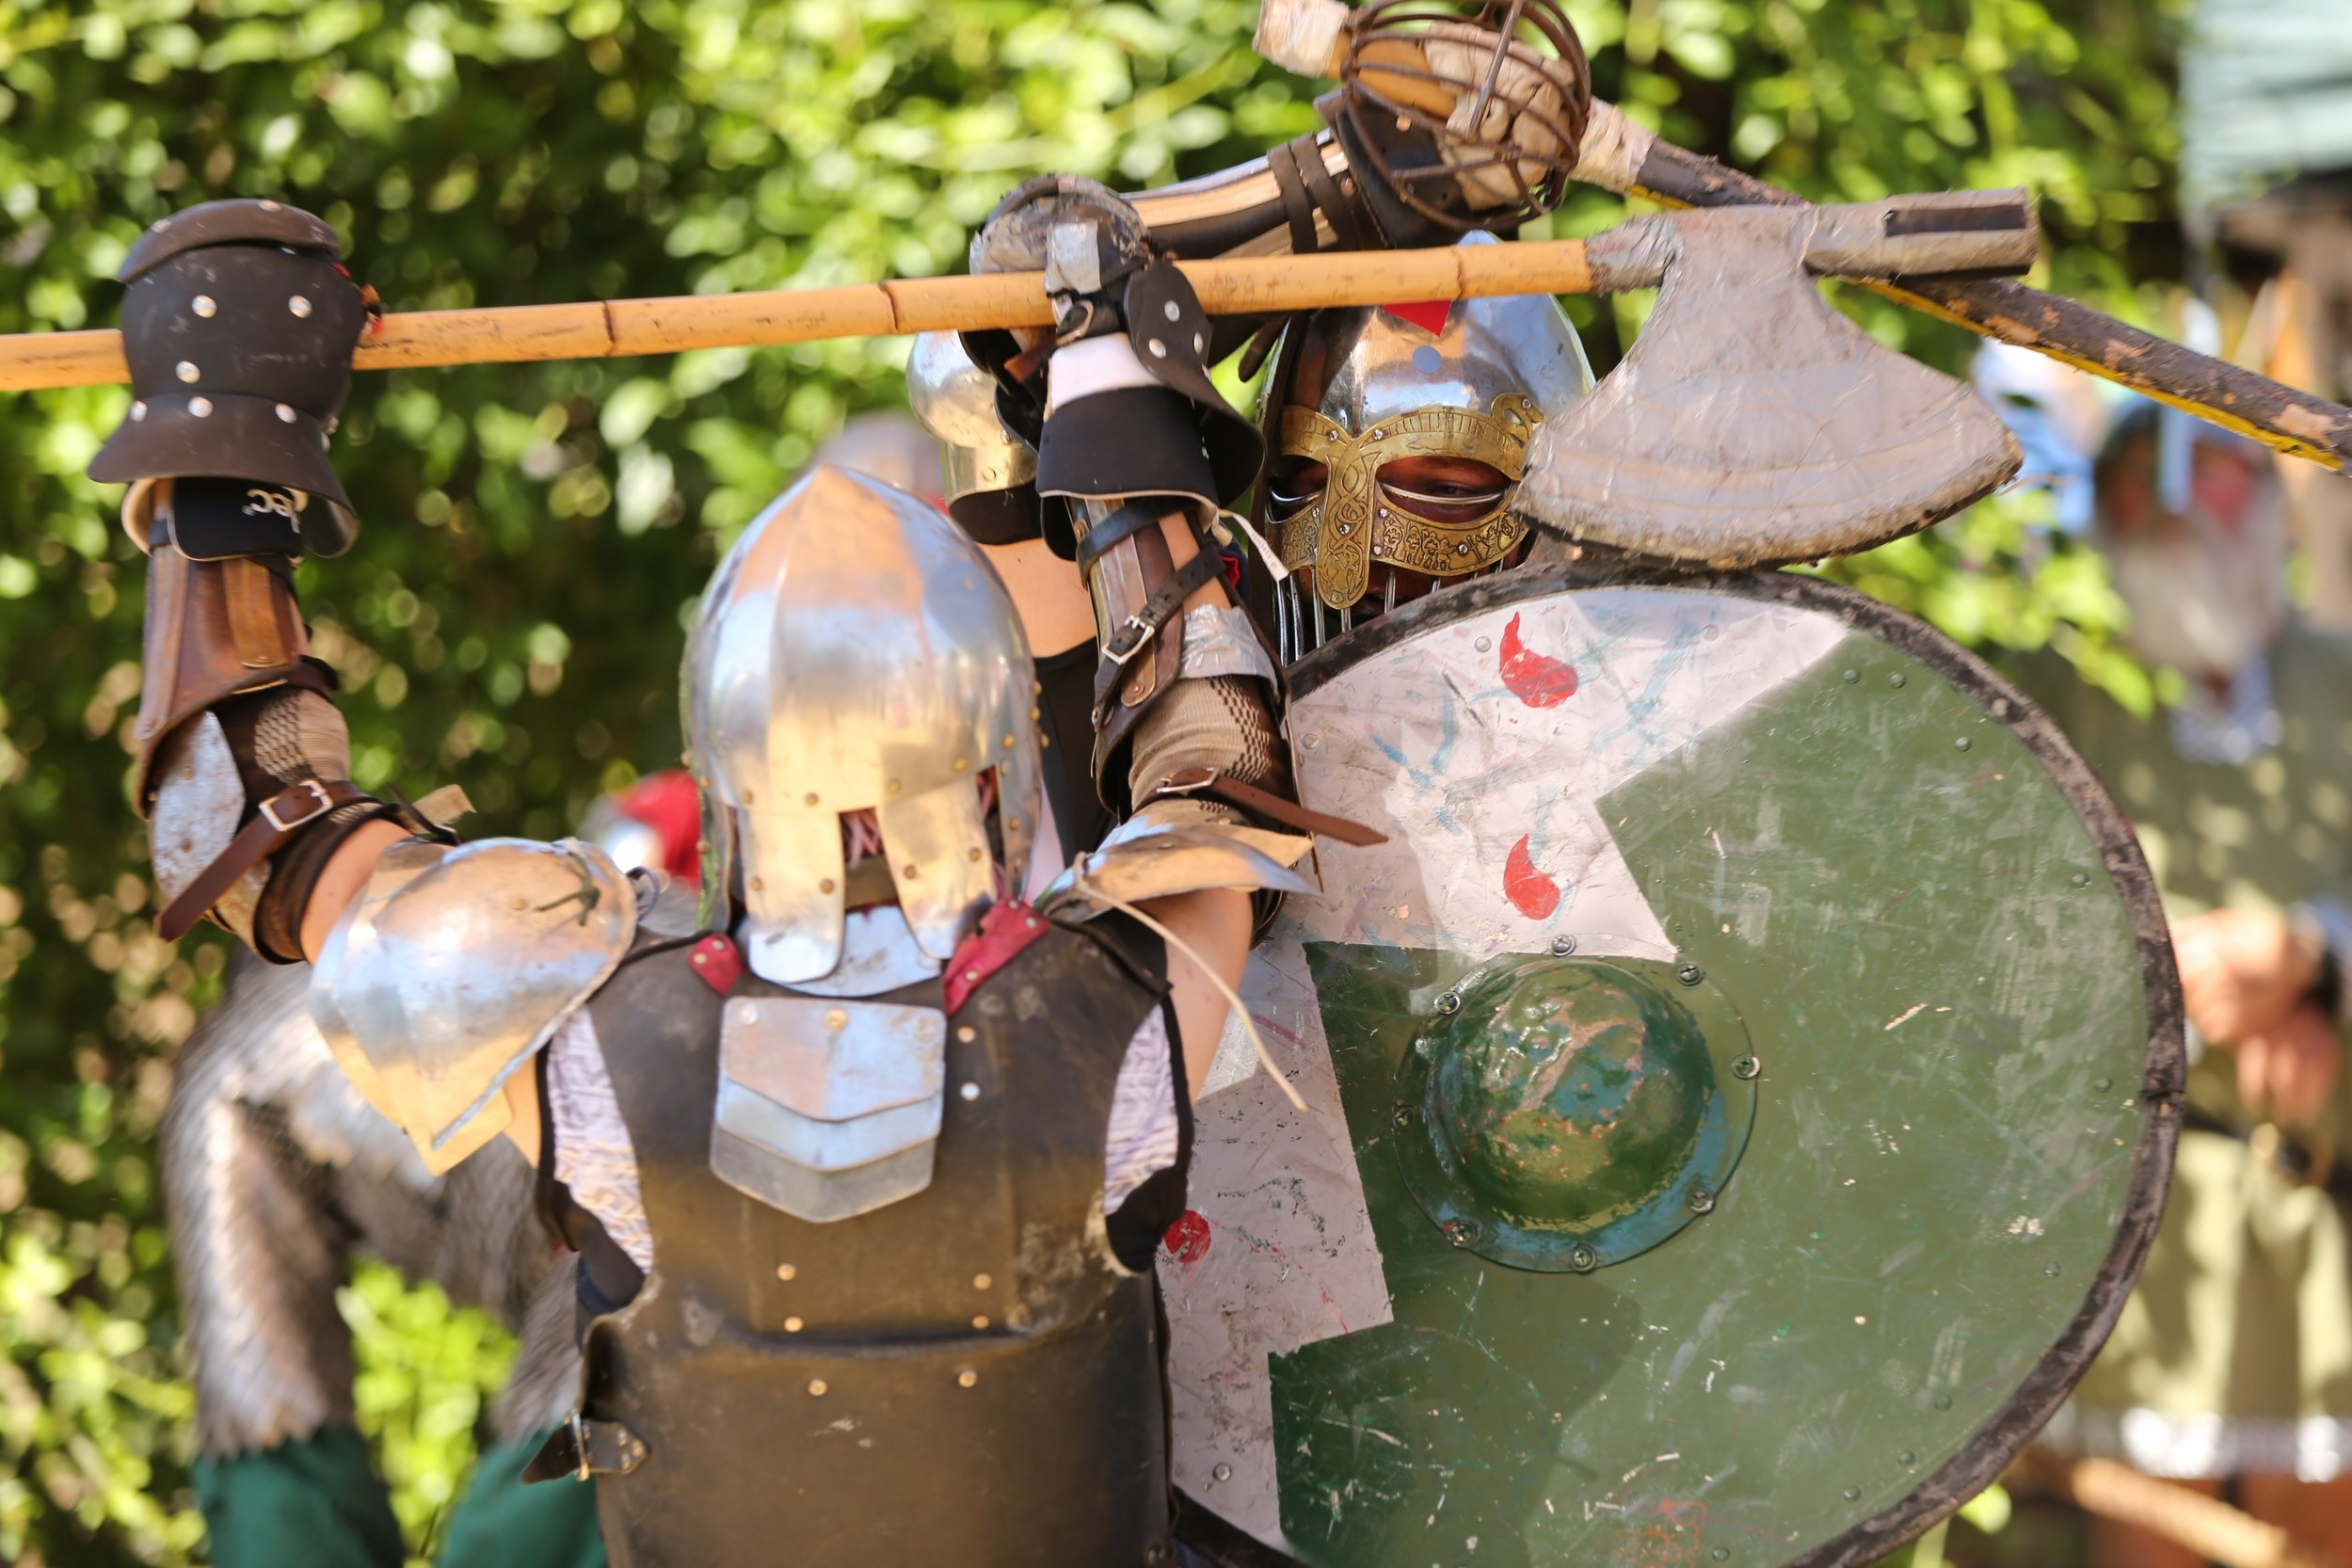 Battles & Weapons Range - Exciting Viking battles will be fought on our list field. At the Weapons Range, our expert instructors will train you in the skills of Axe Throwing, Spear Throwing, and Archery.